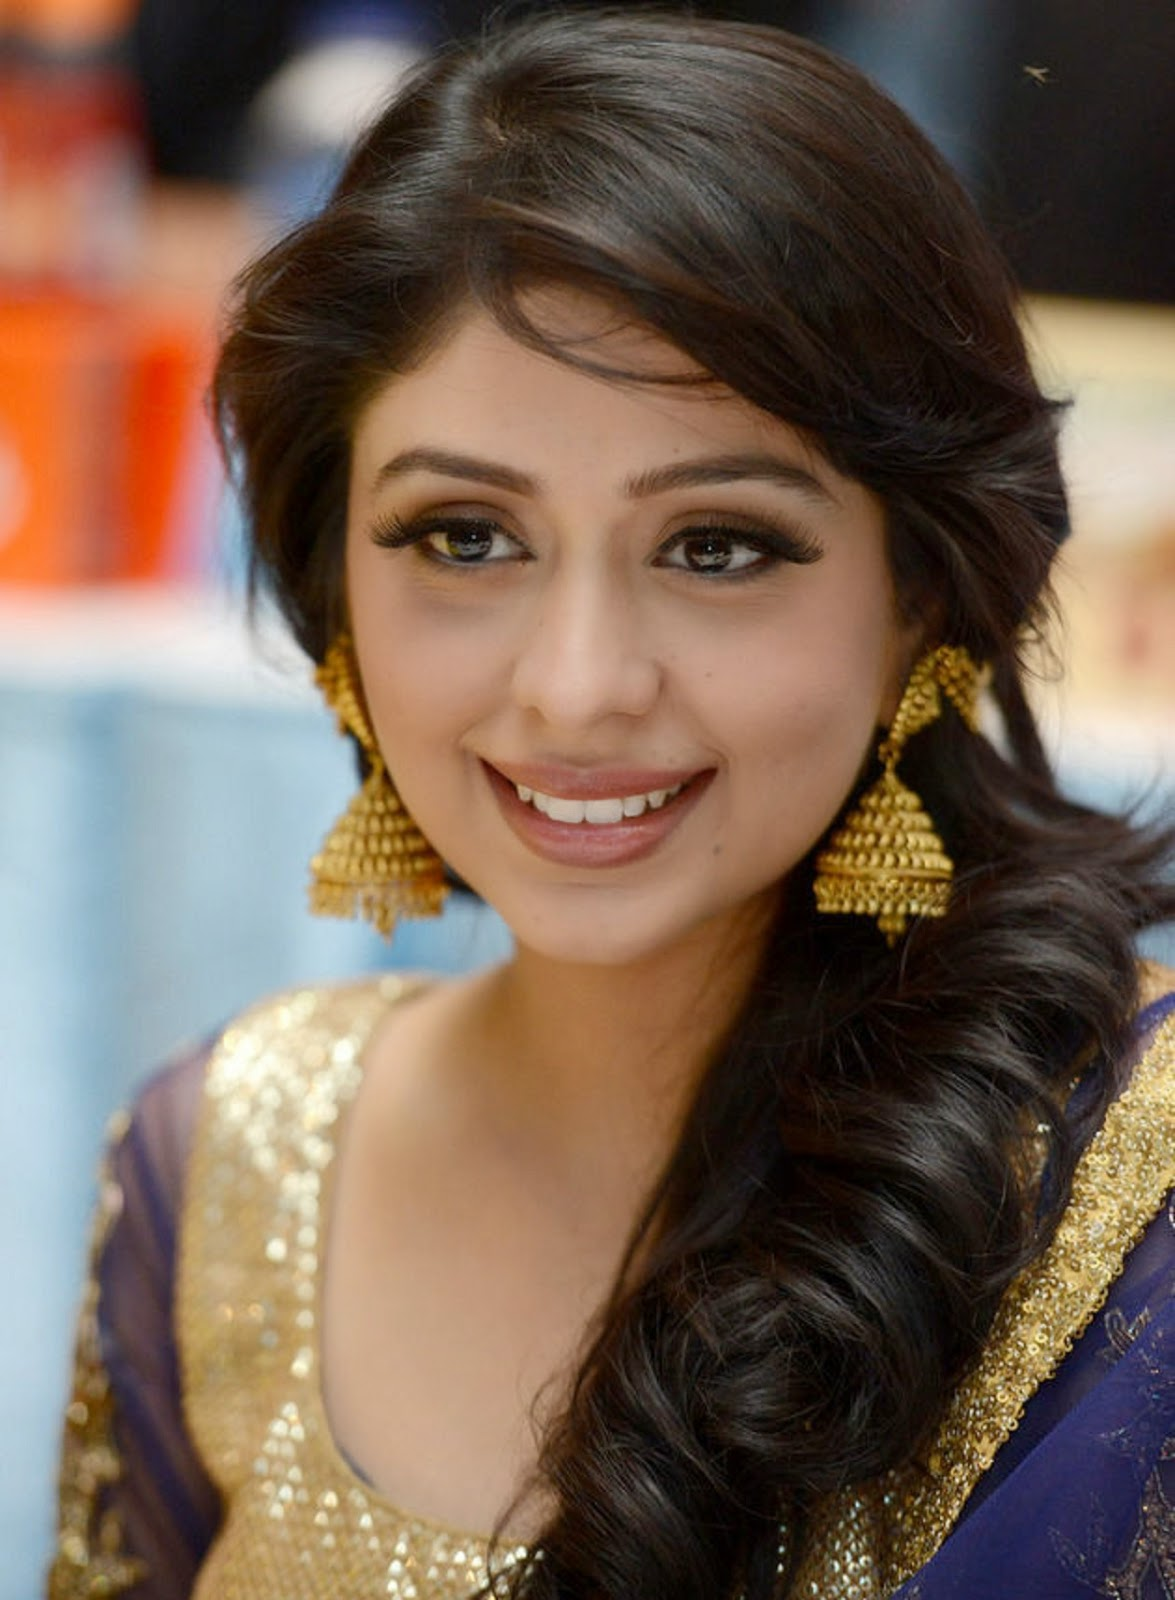 Beautiful Neha Sargam Images Hd Wallpaper All 4u Wallpaper